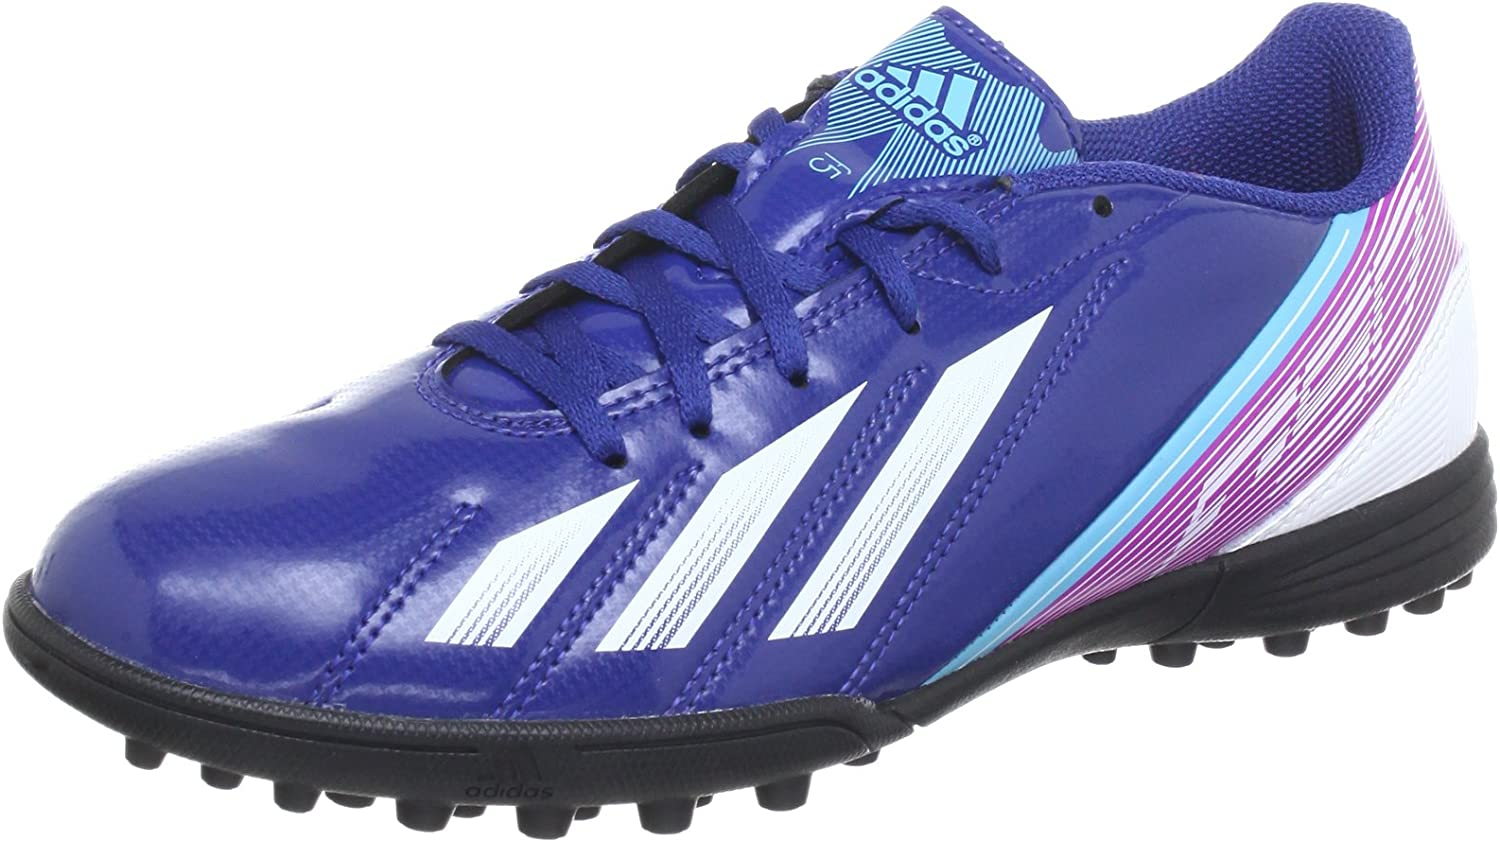 Adidas F5 TRX Tf, Men's Football shoes